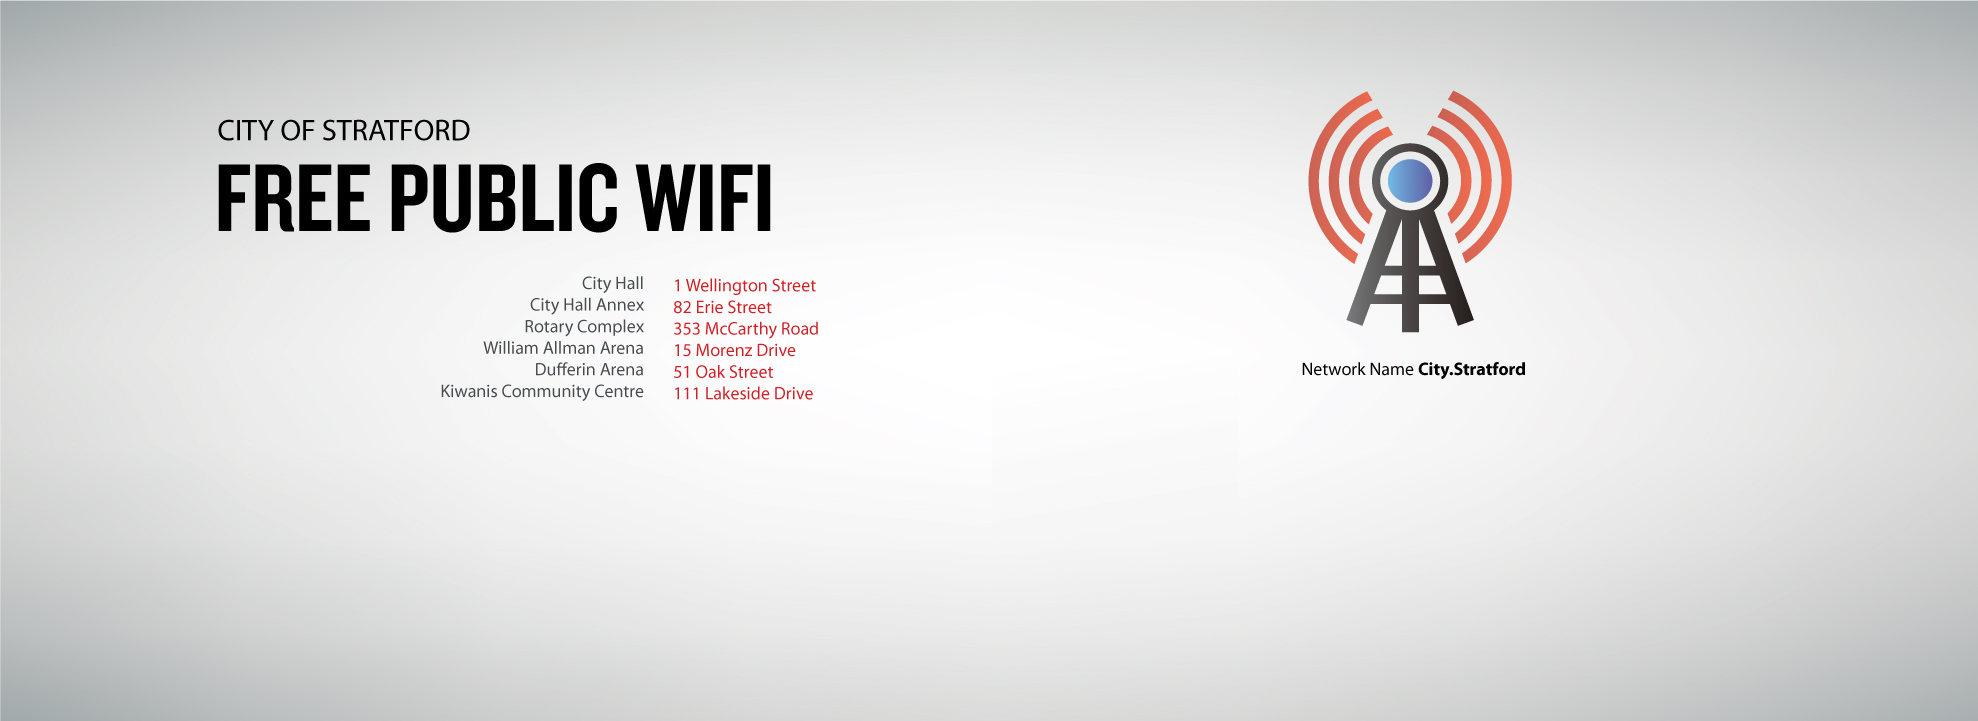 City of Stratford Free Public WiFi